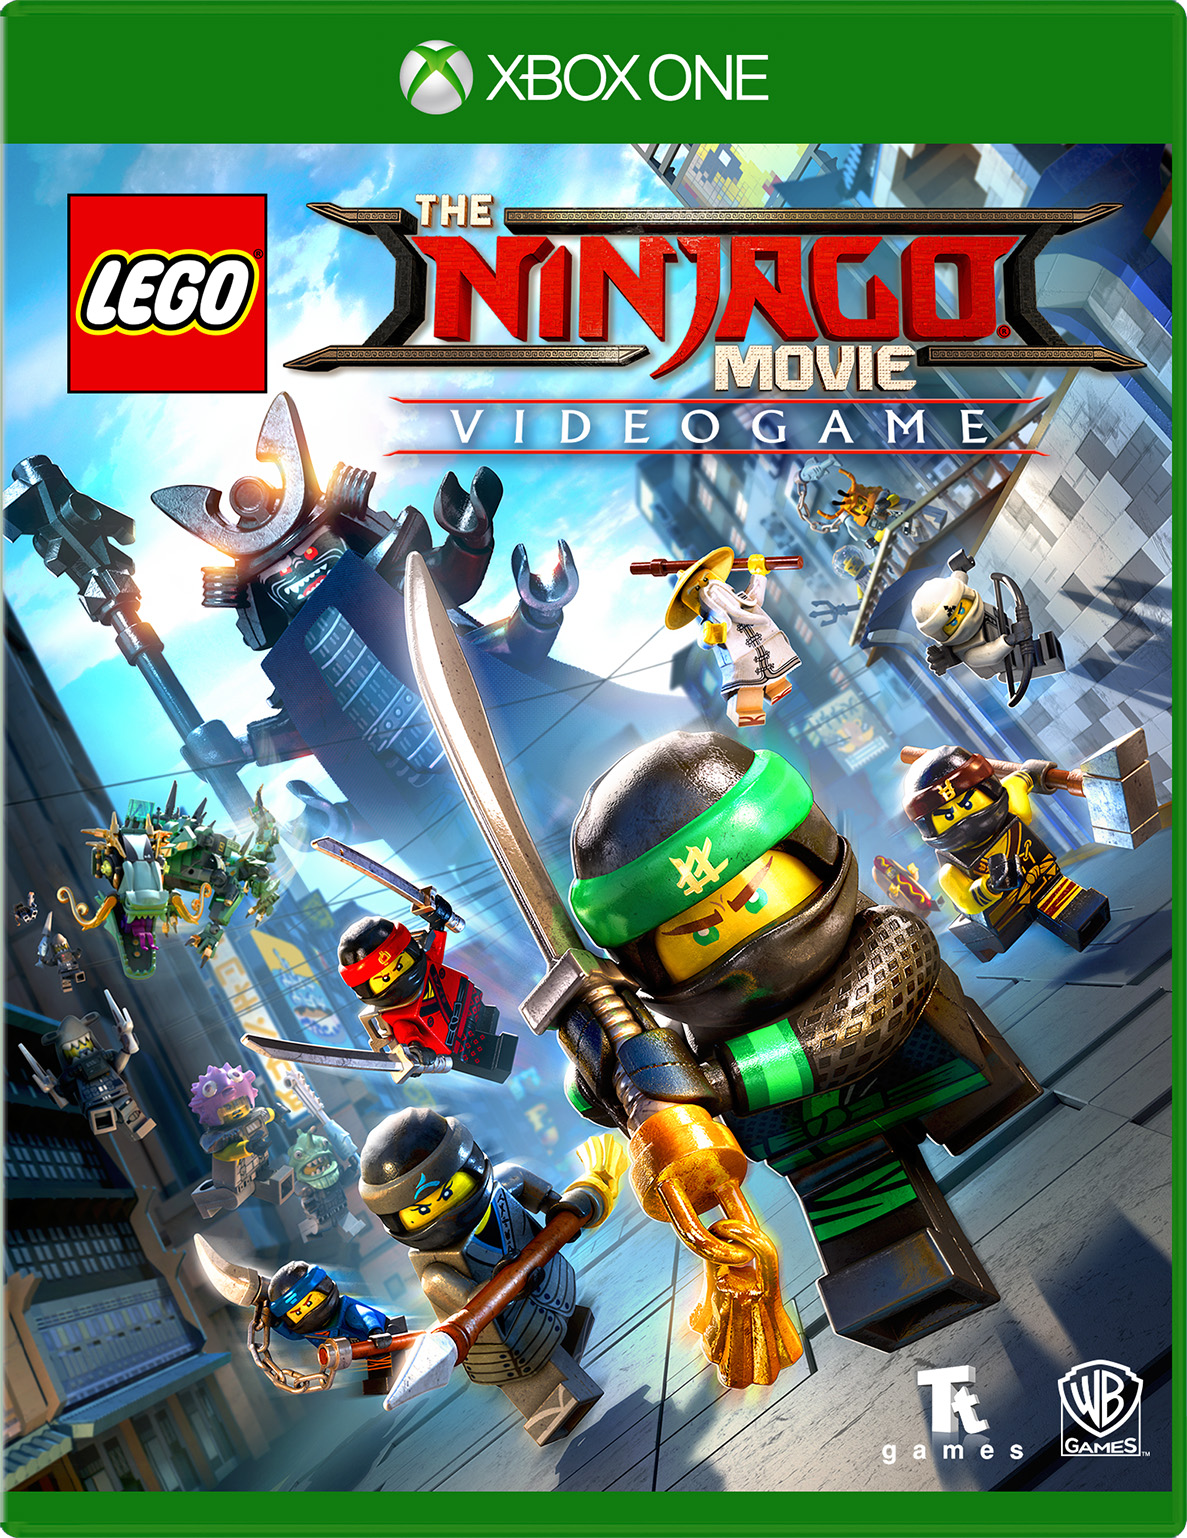 LEGO Ninjago Movie Video Game for Xbox One